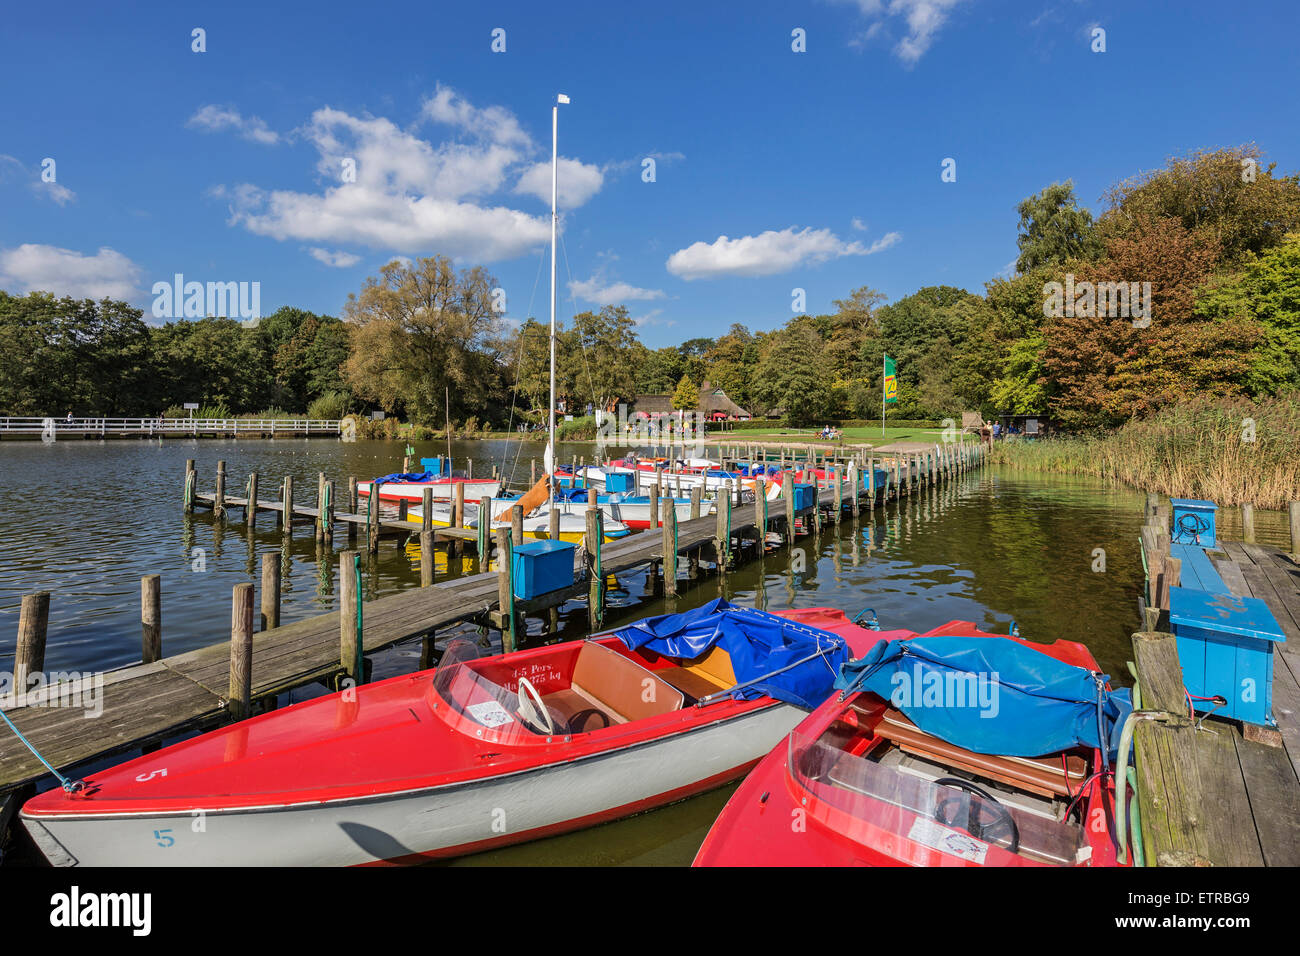 Electric Boat Stock Photos & Electric Boat Stock Images - Alamy